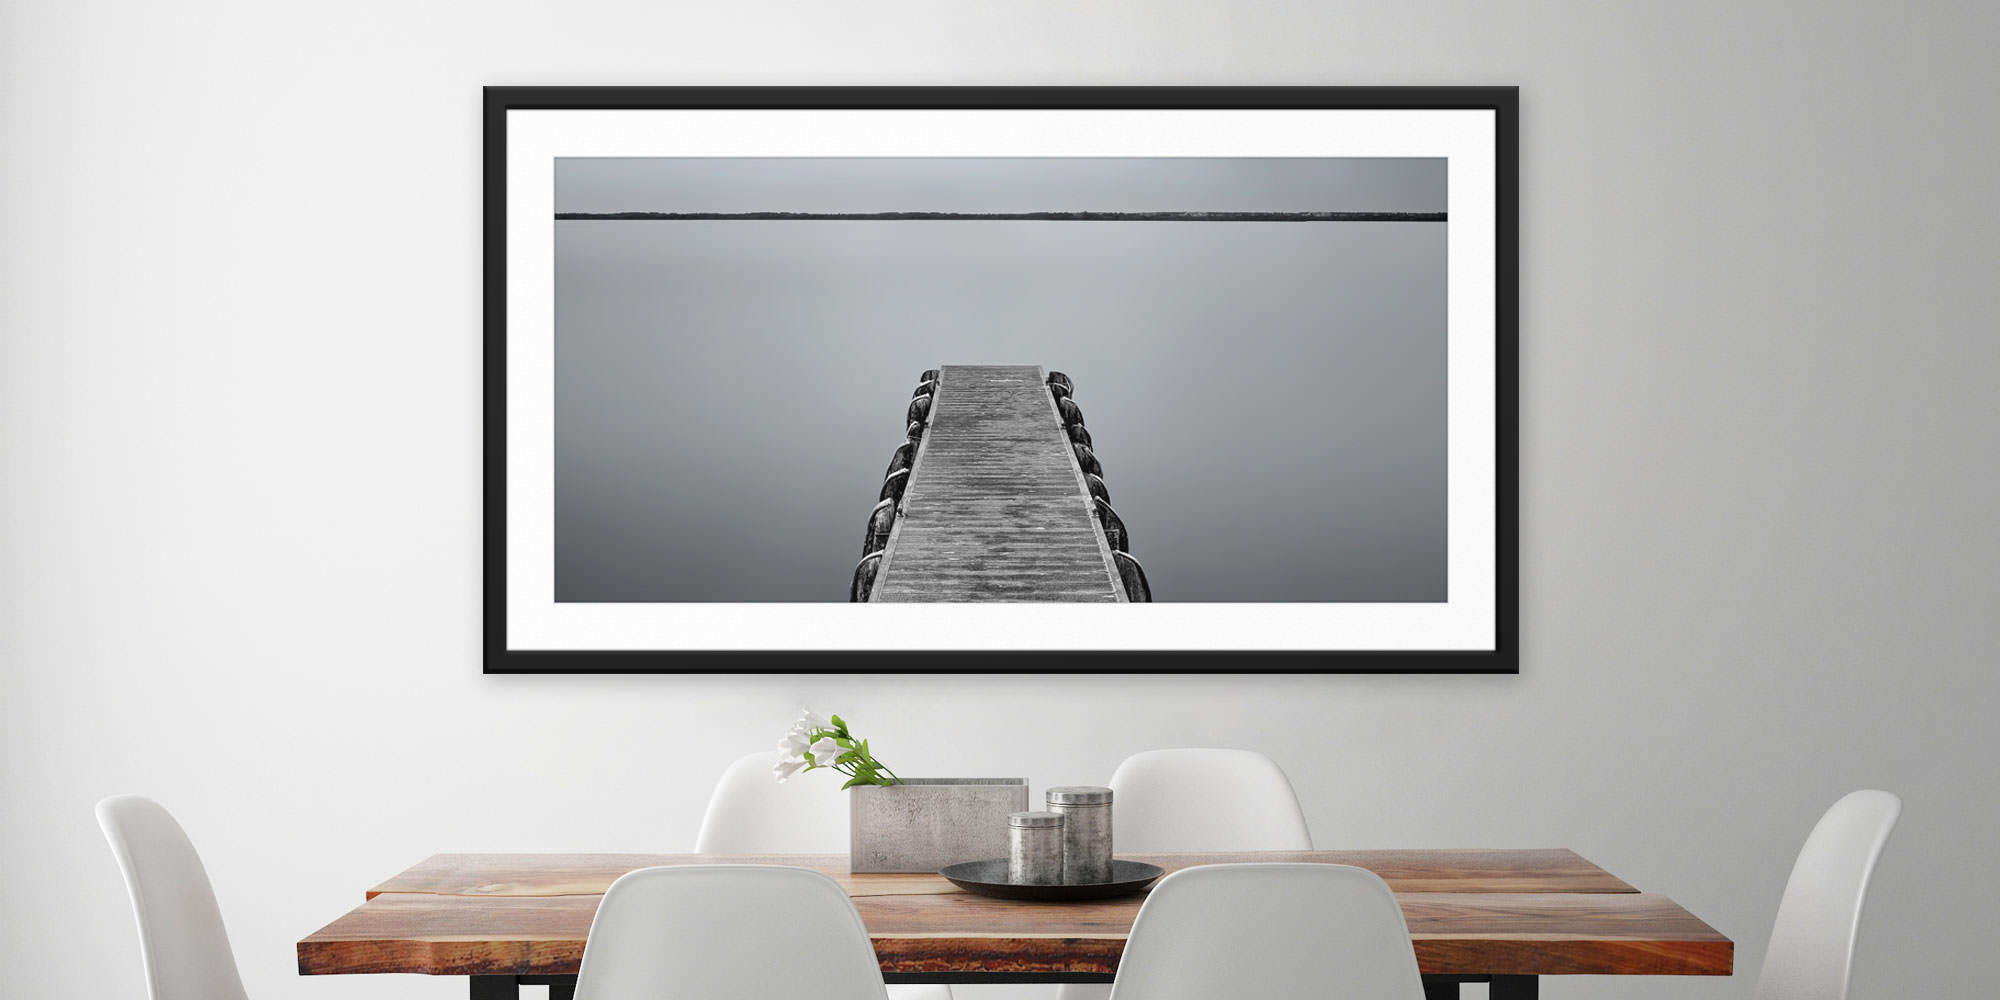 <div class='title'>           Silver Safety Harbor - Safety Harbor, FL by Andrew Vernon         </div>                 <div class='description'>           A framed and matted print of Silver Safety Harbor by Andrew Vernon hangs in a modern dining room         </div>